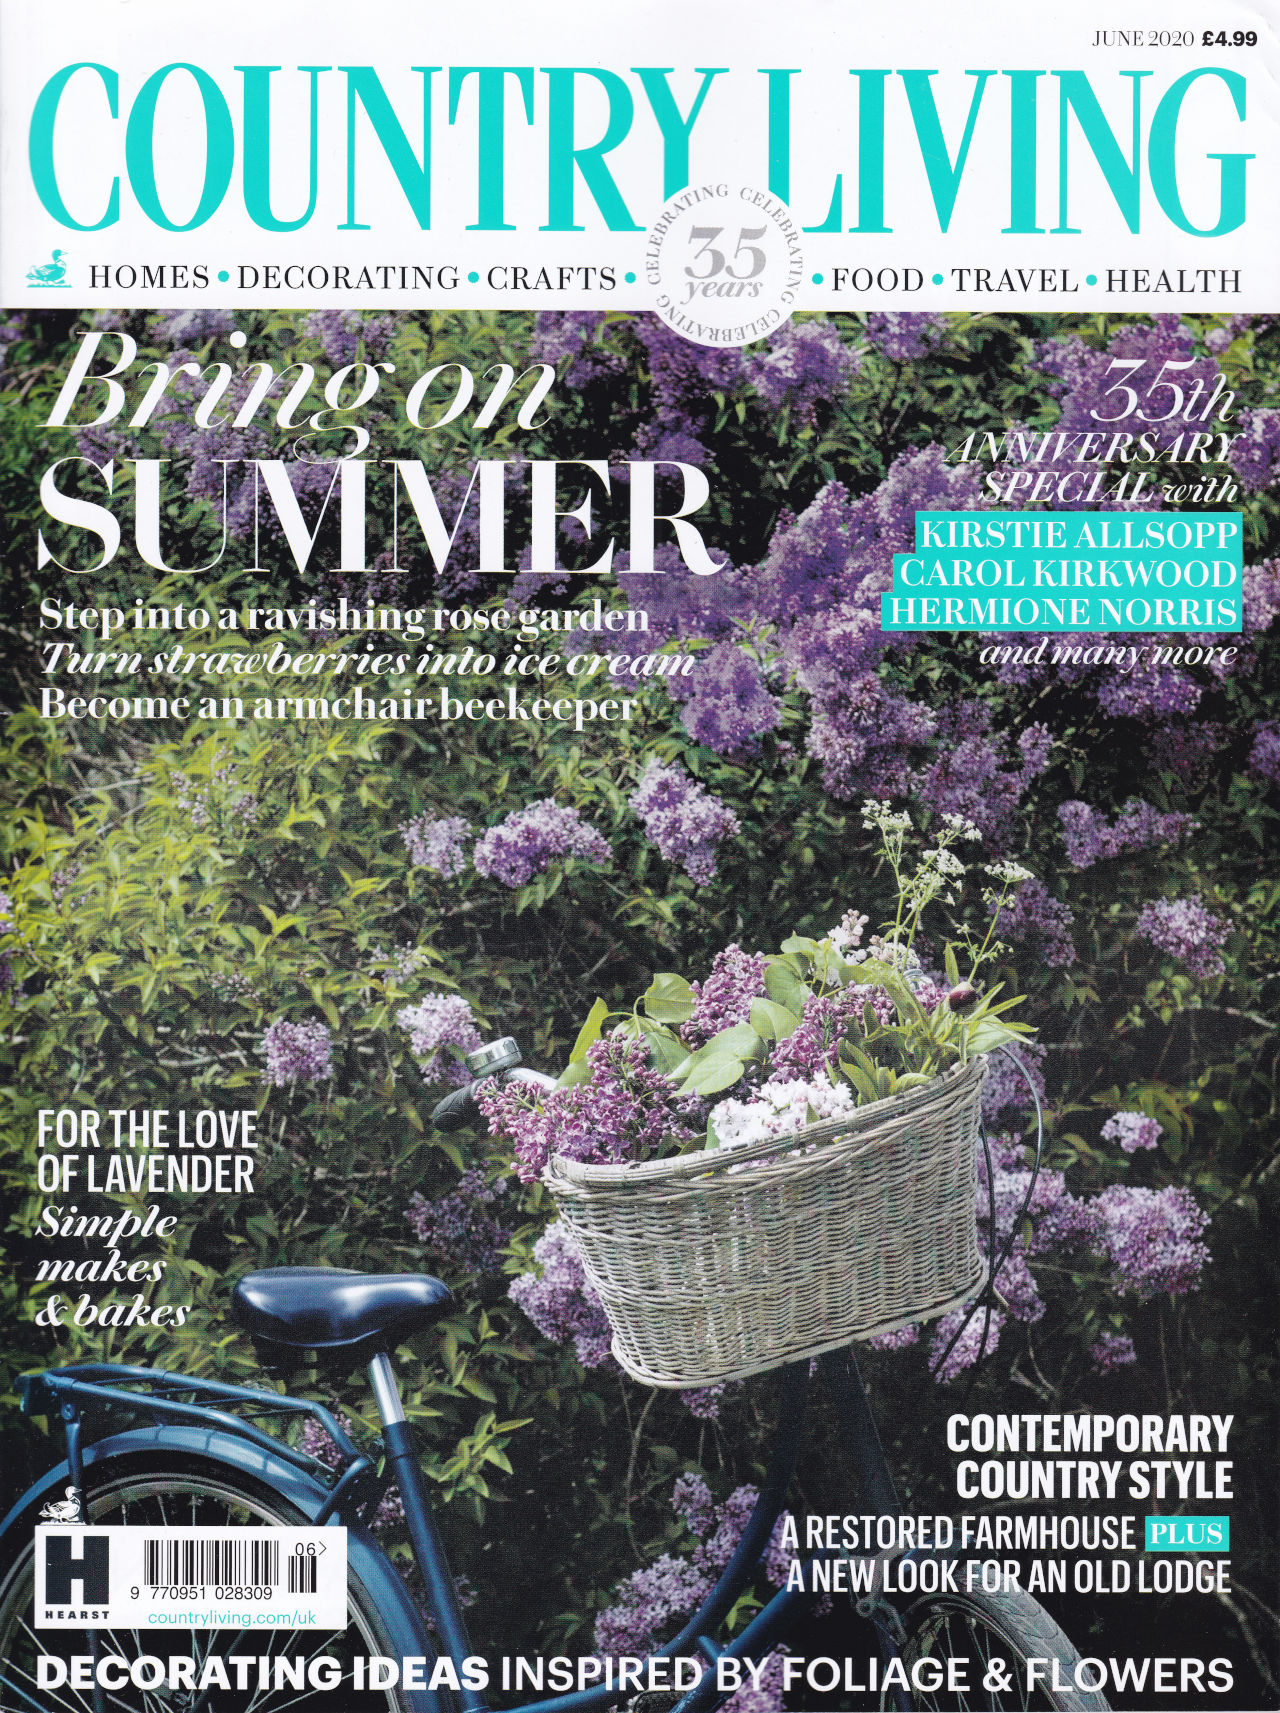 country living cover june 20 web